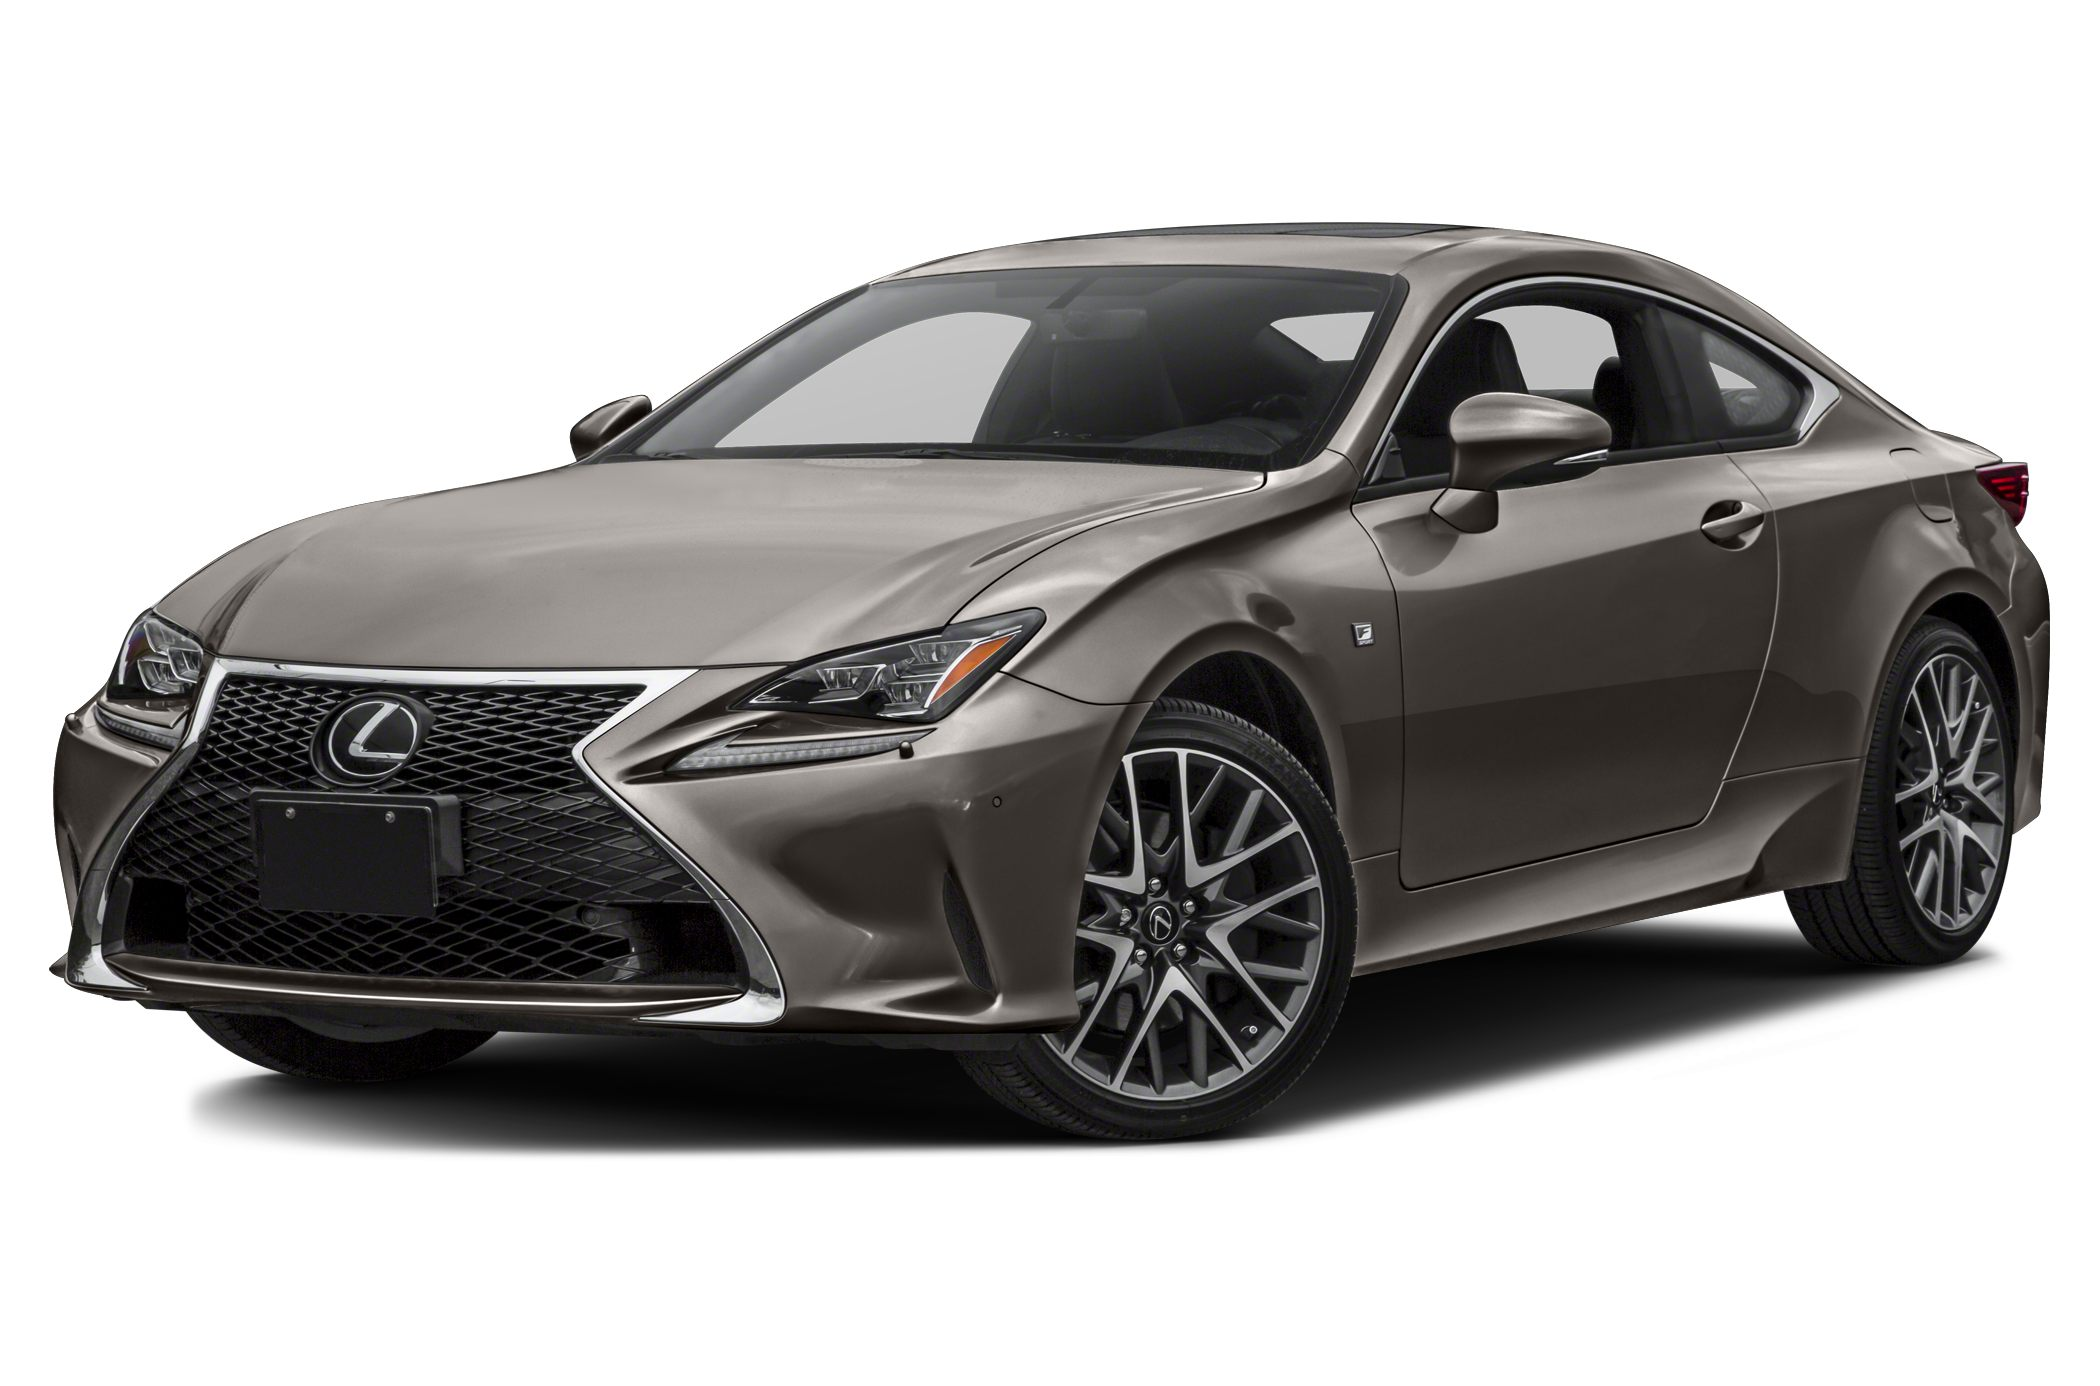 2015 Lexus RC 350 Base Coupe for sale in Newport Beach for $52,369 with 9 miles